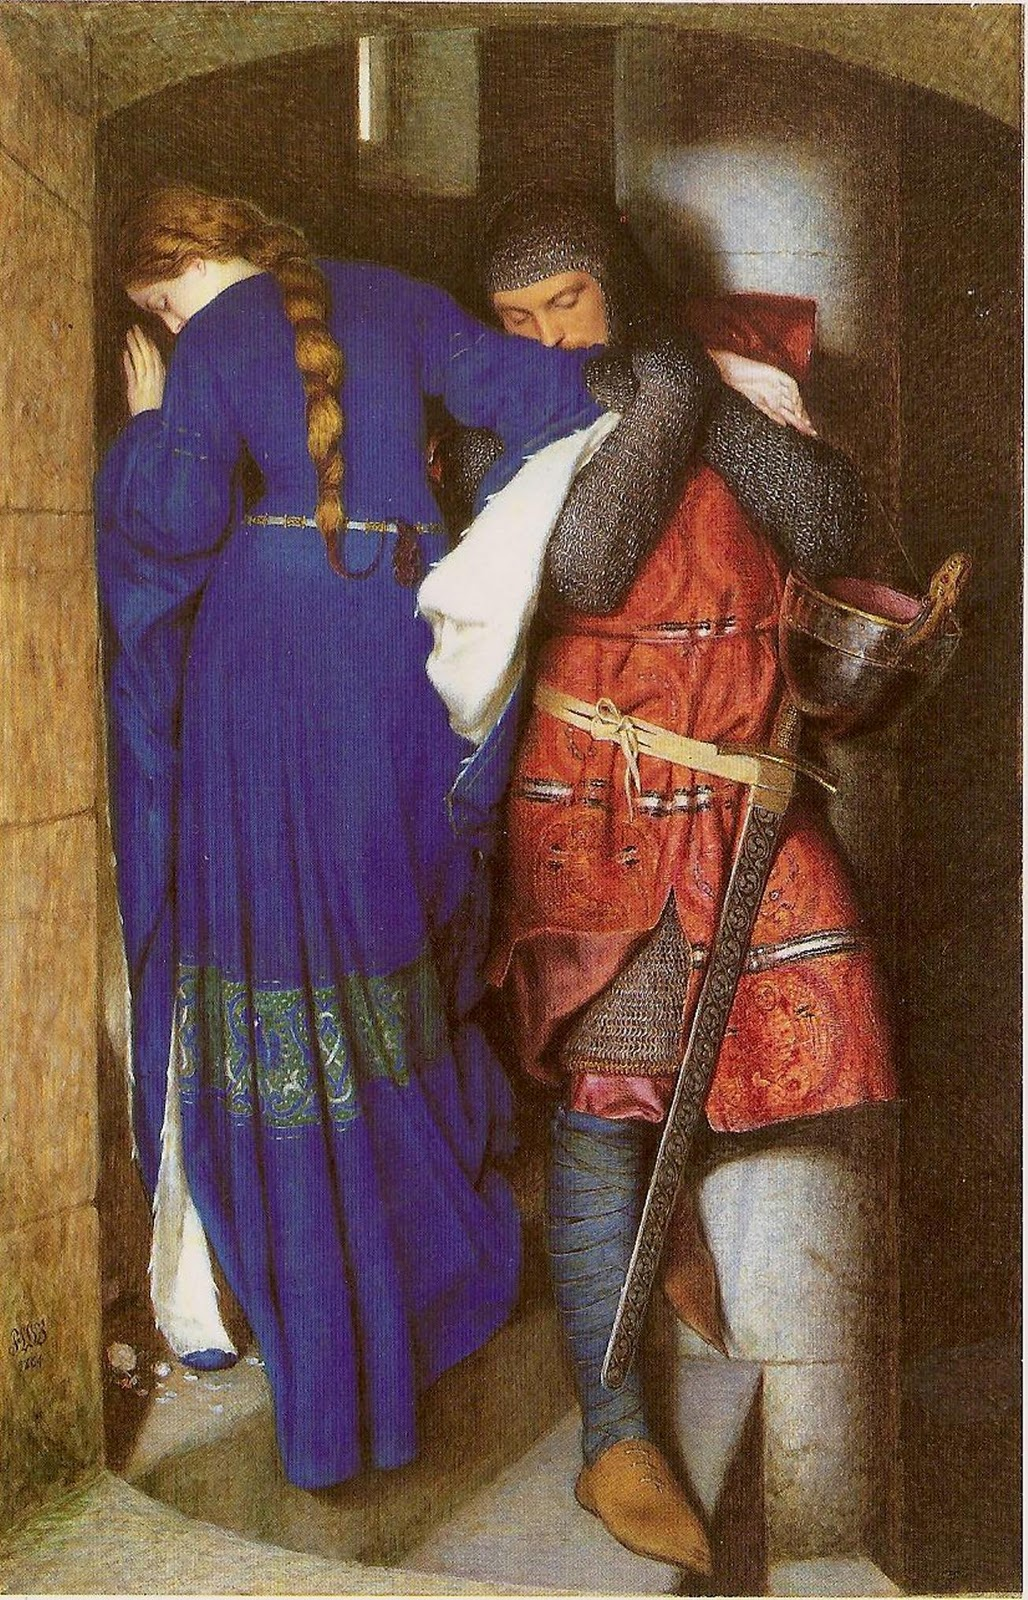 Hellelil and Hildebrand, The Meeting on the Turret Stairs by Frederic William Burton (1816-1900).